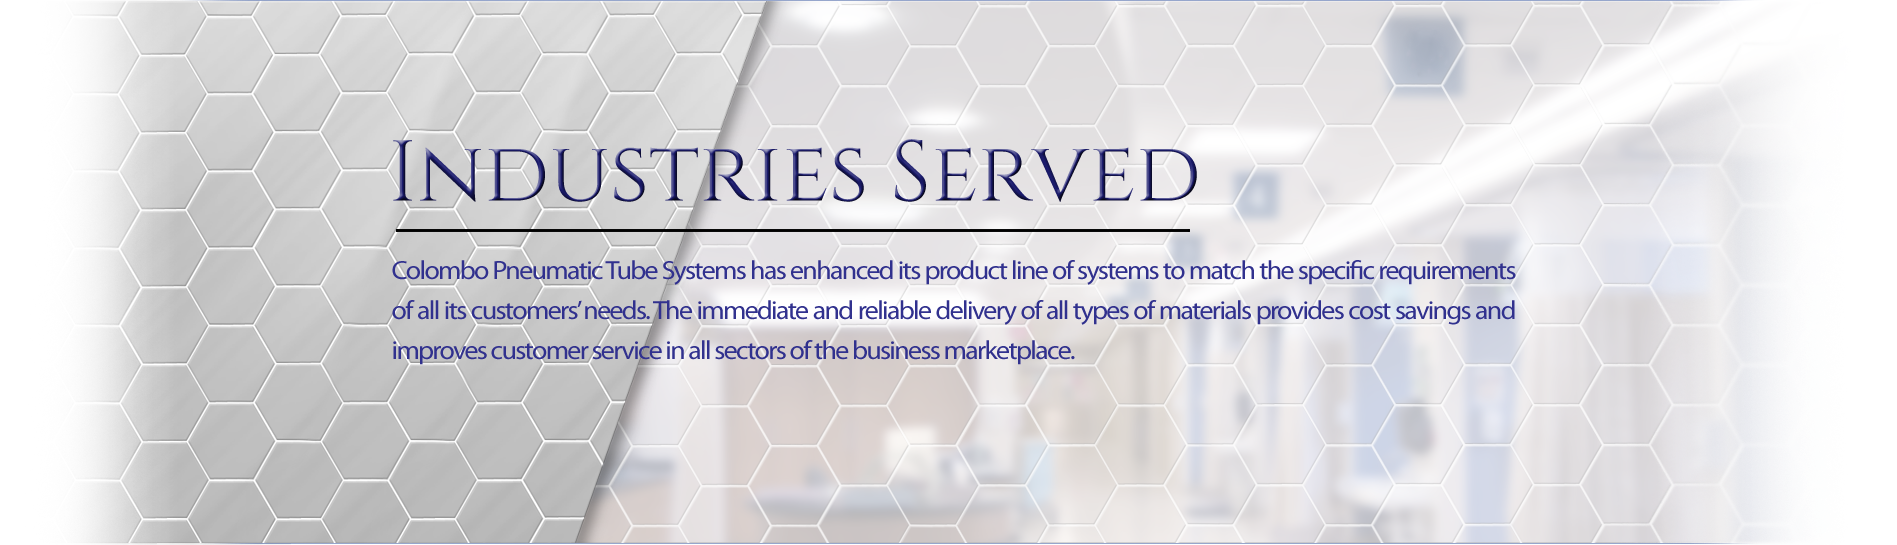 Colombo Pneumatic Tube Sytems has enhanced its product line of systems to match the specific requirements of all its customers' needs. The immediate and reliable delivery of all types of materials provides cost savings and improves customer service in all sectors of the business marketplace.